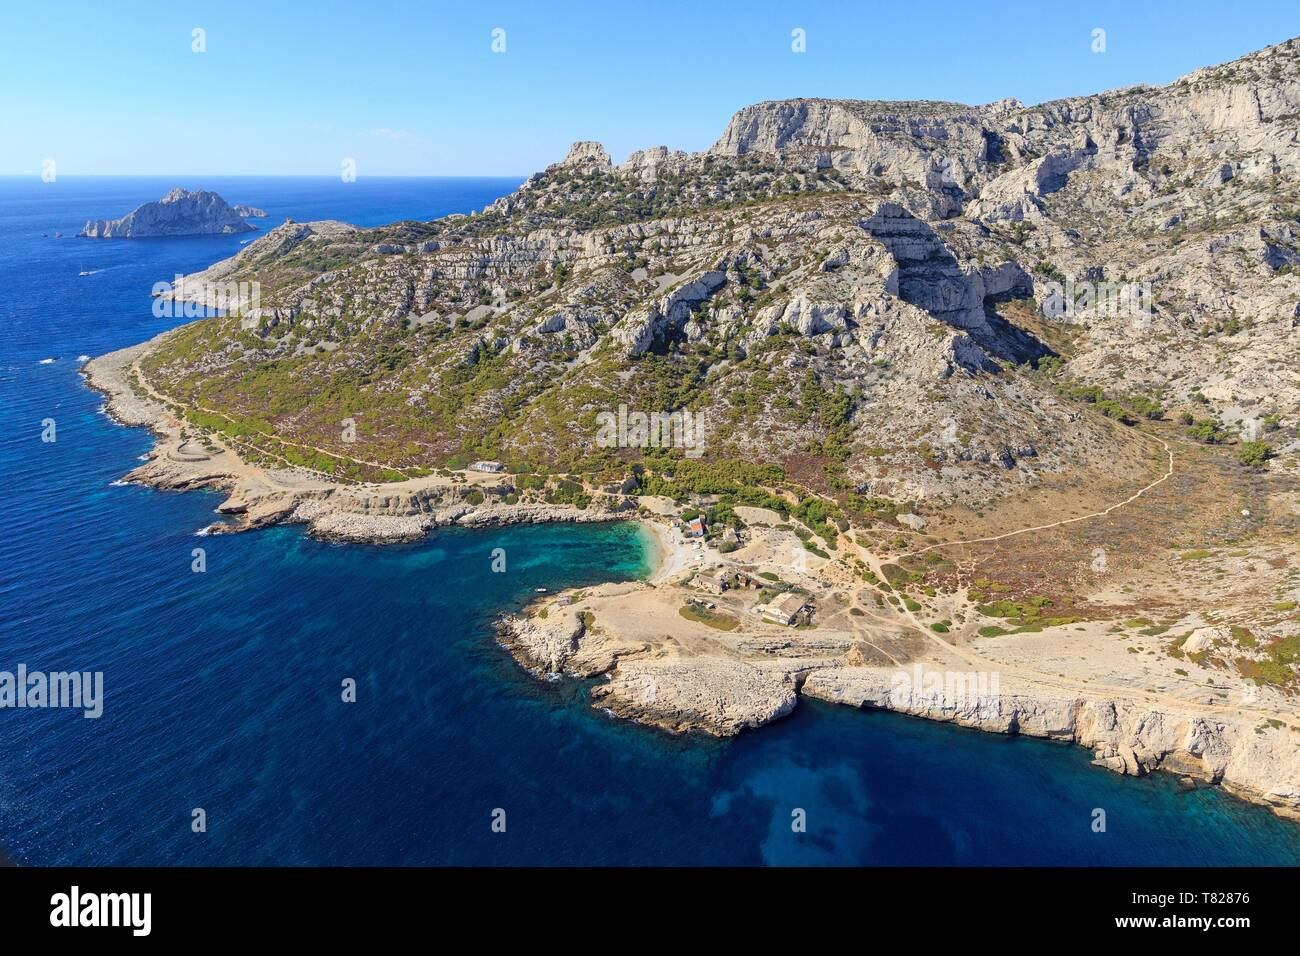 France, Bouches du Rhone, Calanques National Park, Marseille, 9th arrondissement, Marseilleveyre cove, Maire island in the background (aerial view) - Stock Image